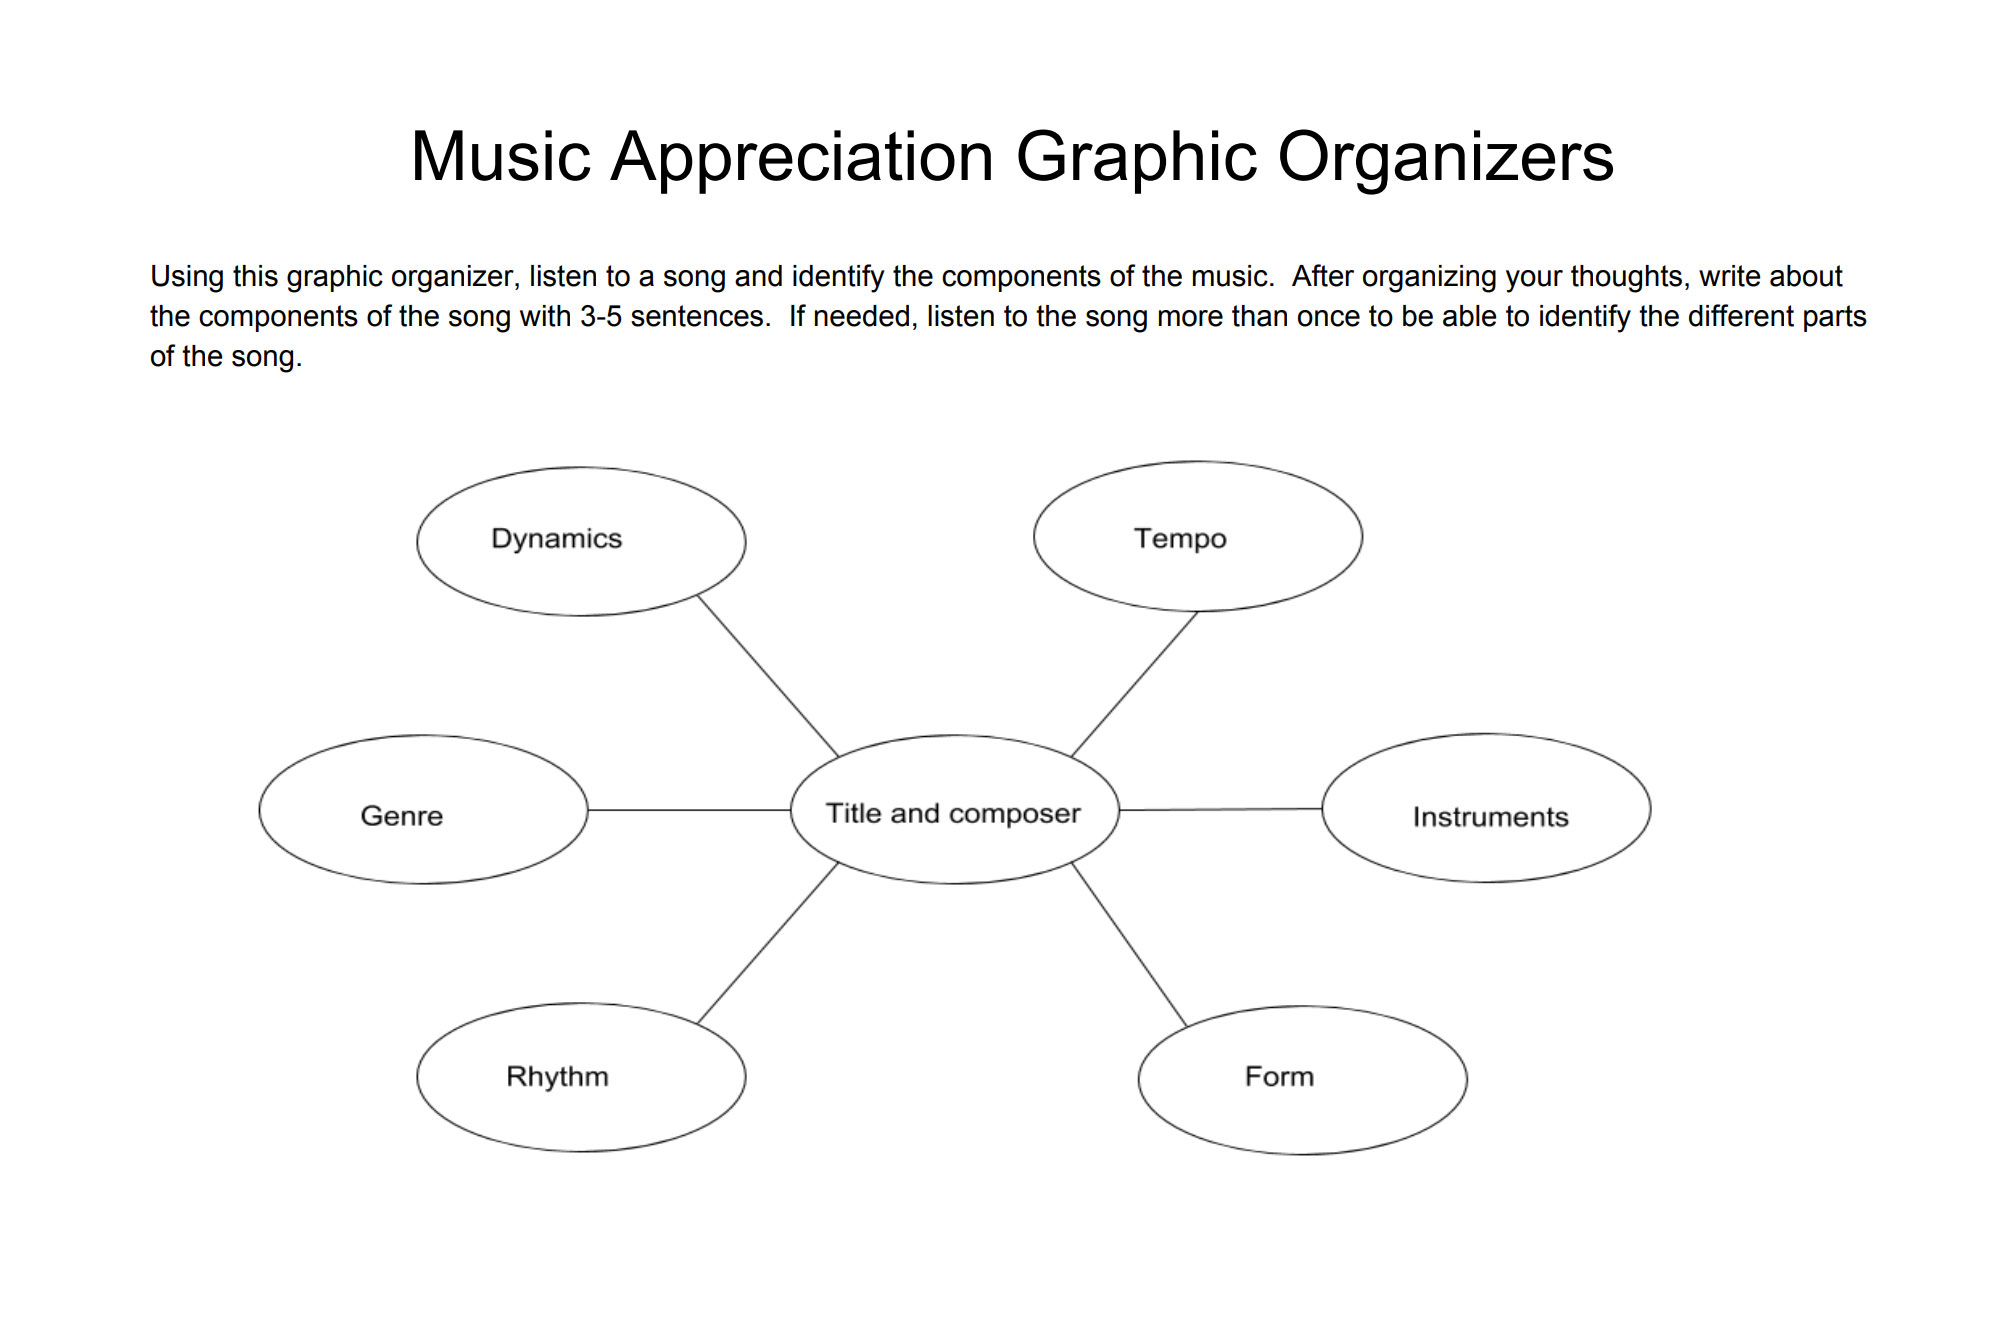 Movement In My Classroom Can Take Many Forms From Music And